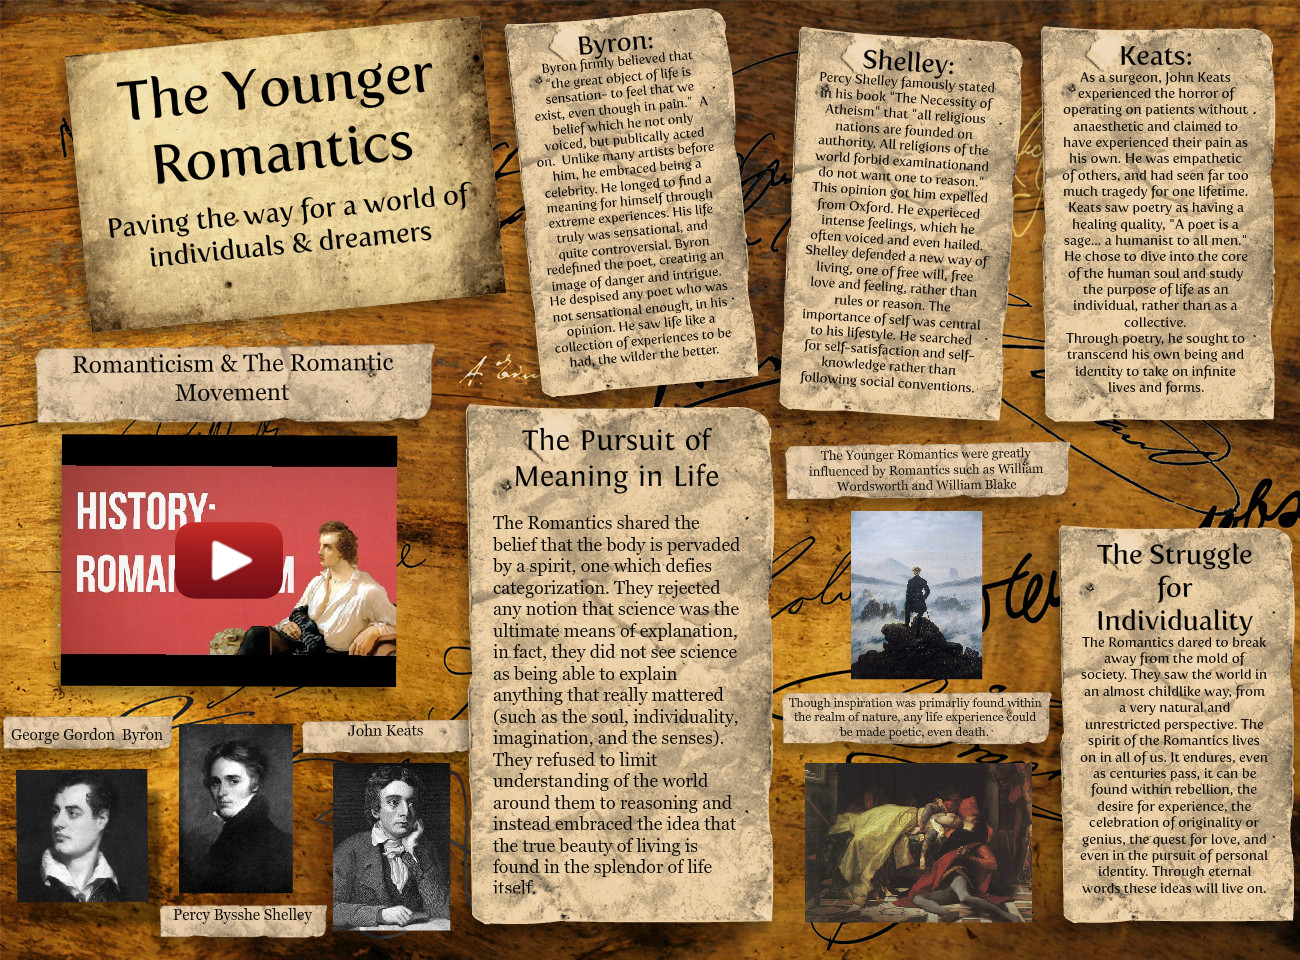 The Younger Romantics